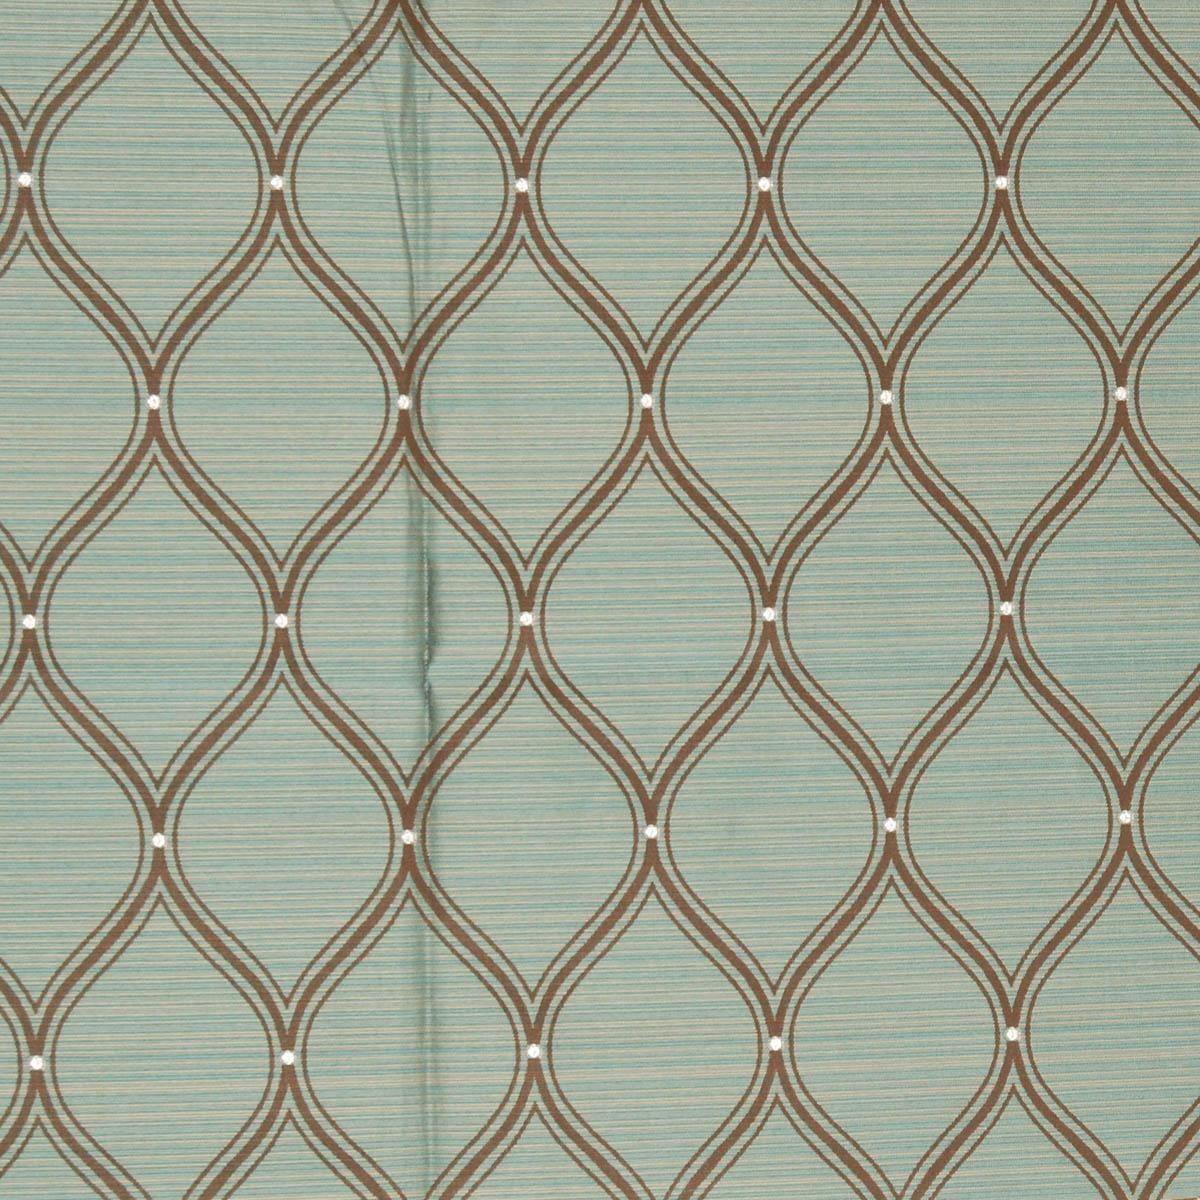 Luxor Curtain Fabric Teal | Free UK Delivery | Terrys Fabrics